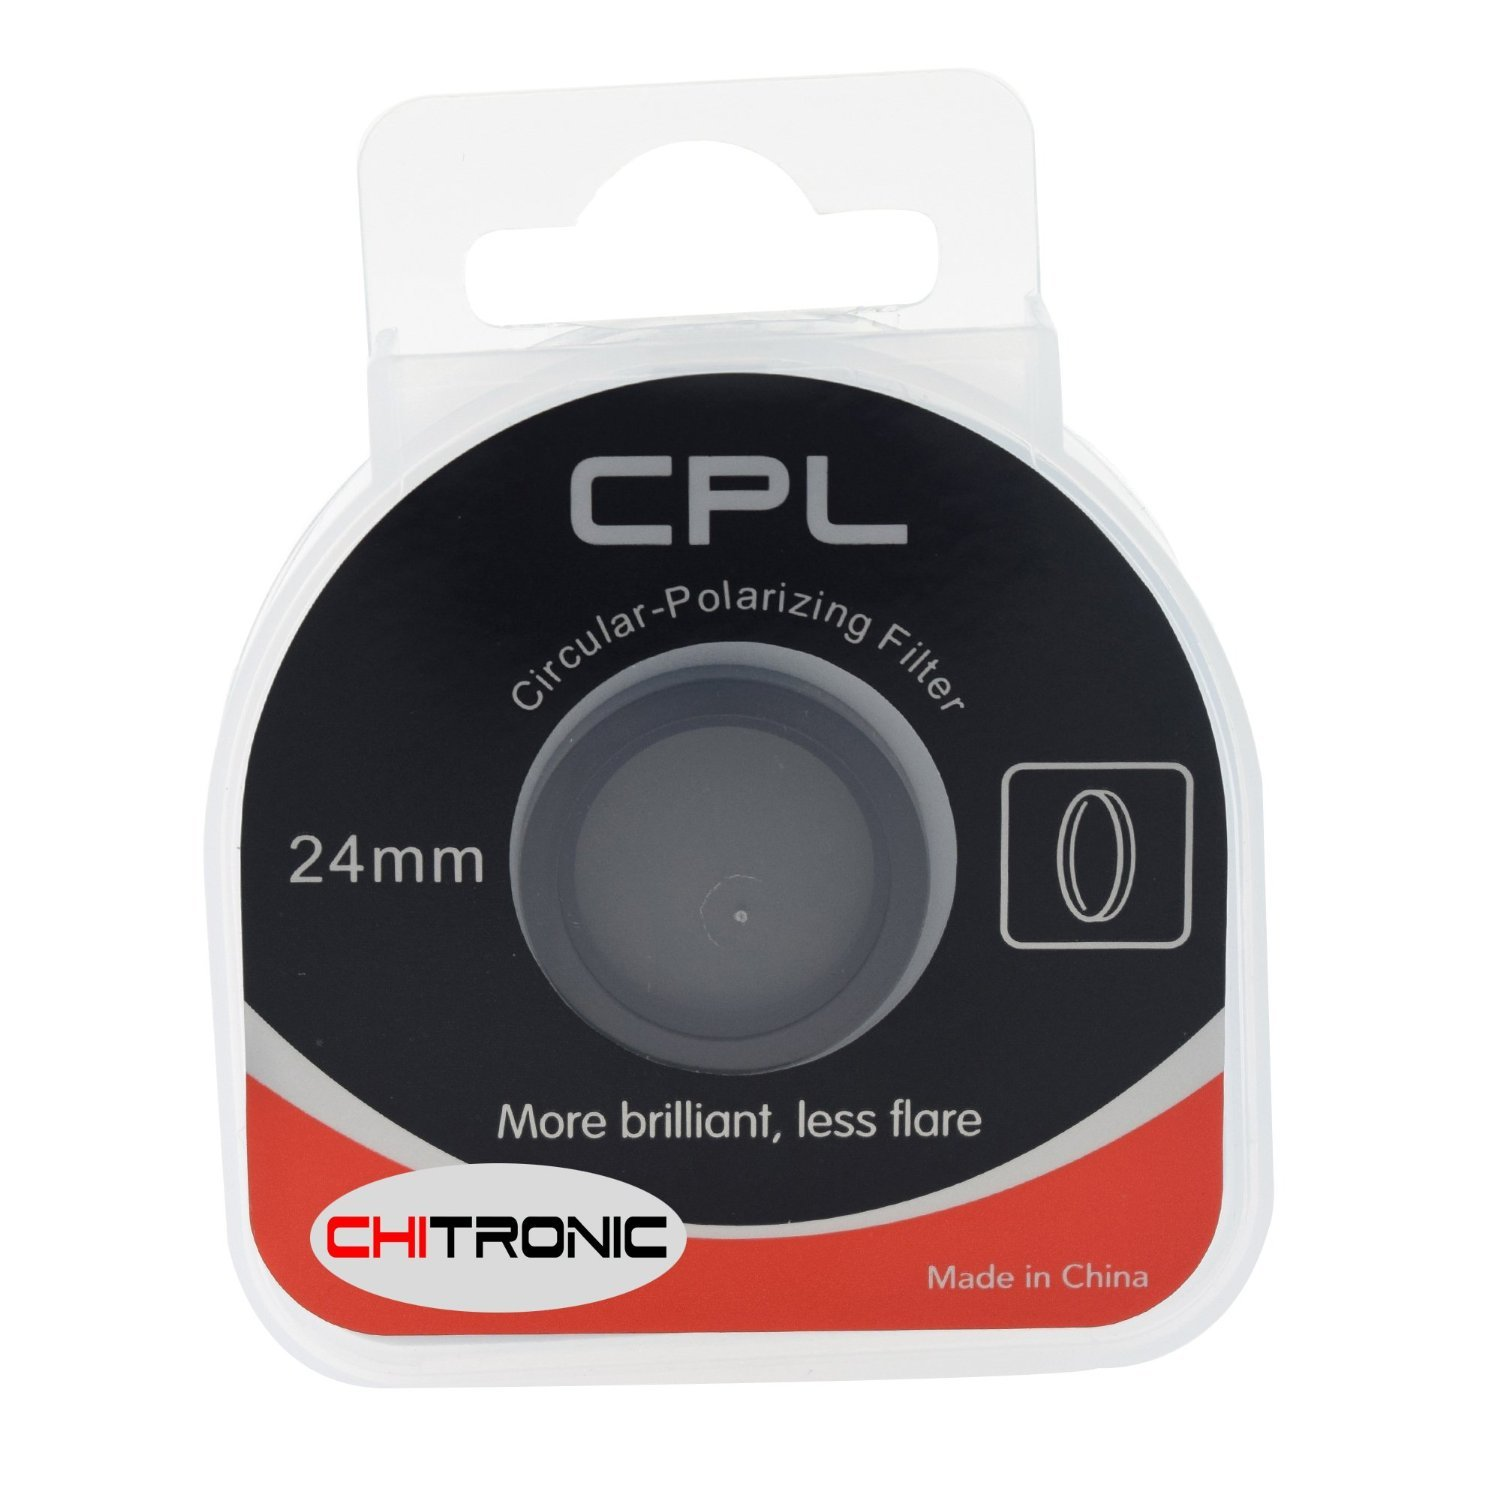 CPL Filter Glass 24mm Lens - Circular Polarizer Suitable for The Amacam AM-M88 and AM-90 Car Dash Cams. Also for Photography and Still Cameras. Affordable Optical Polarising Filter.